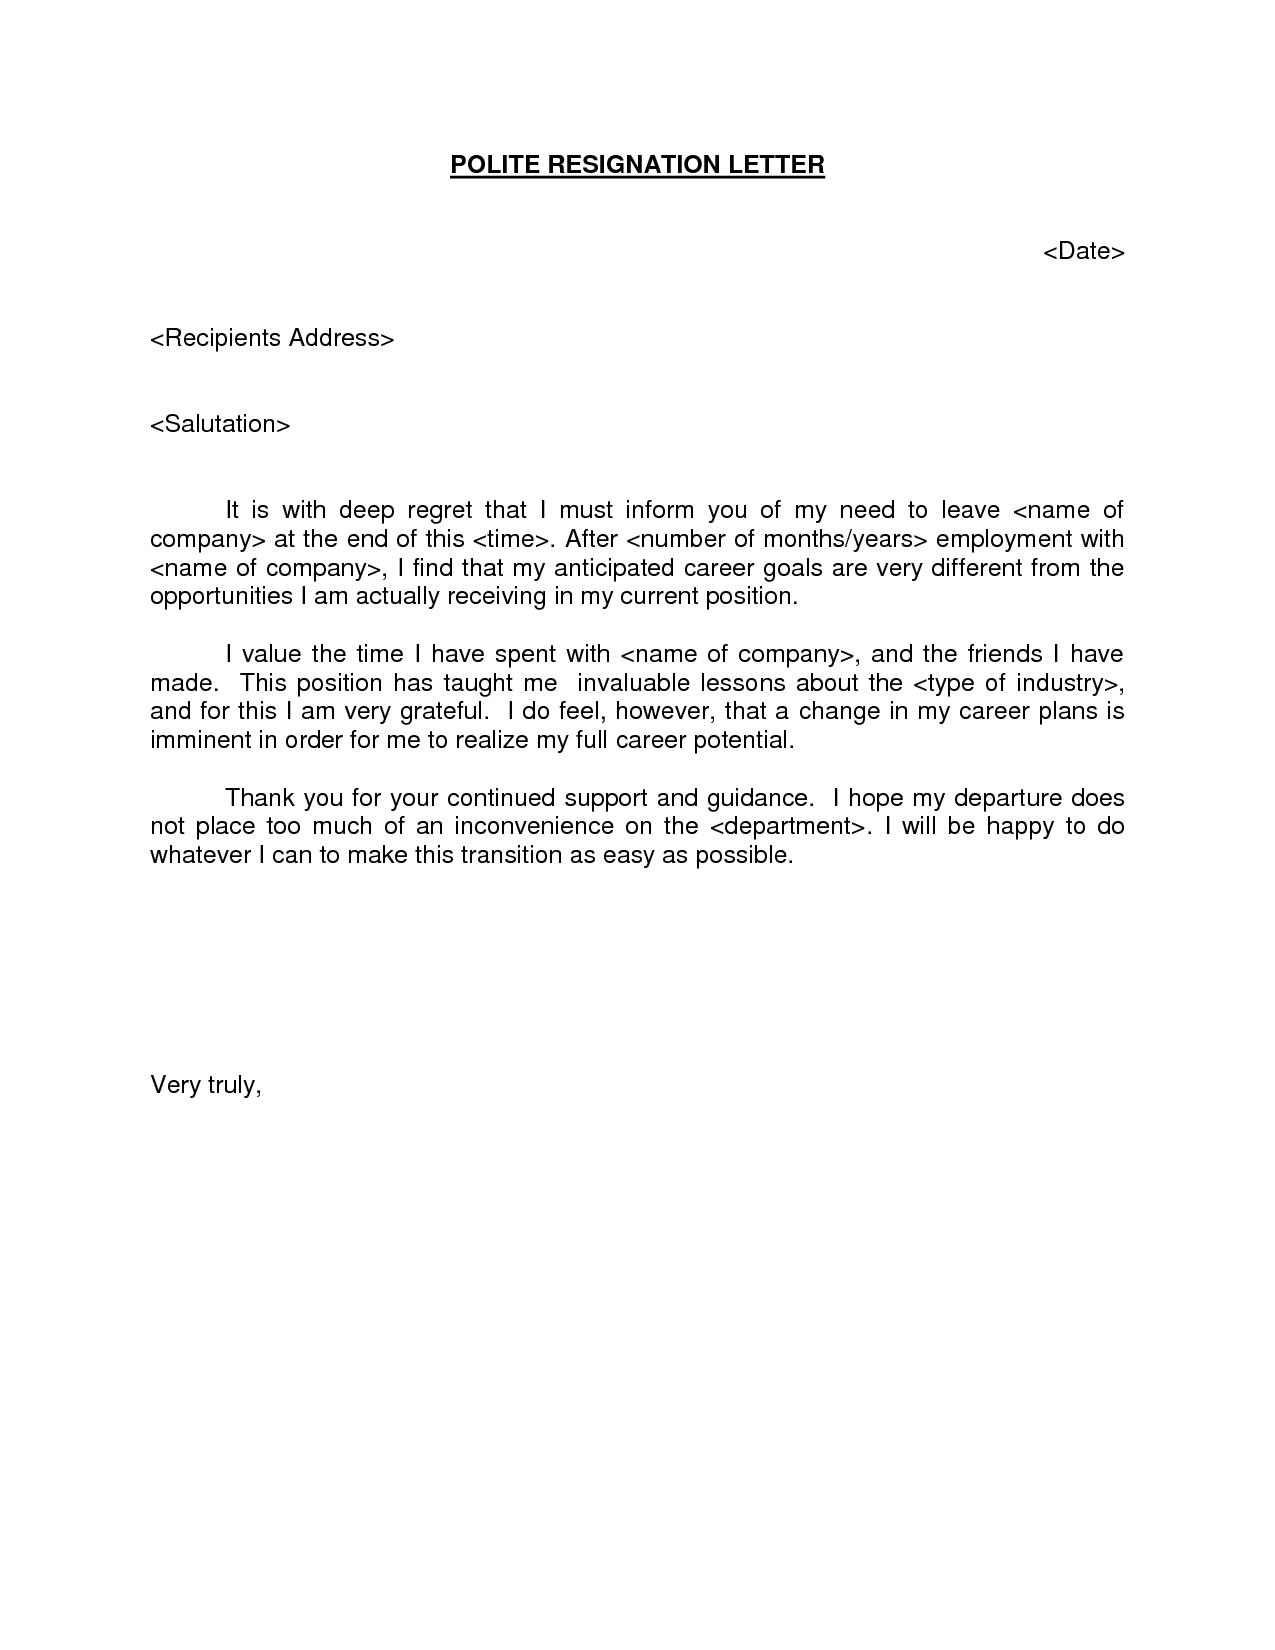 How to Make A Donation Letter Template - Polite Resignation Letter Bestdealformoneywriting A Letter